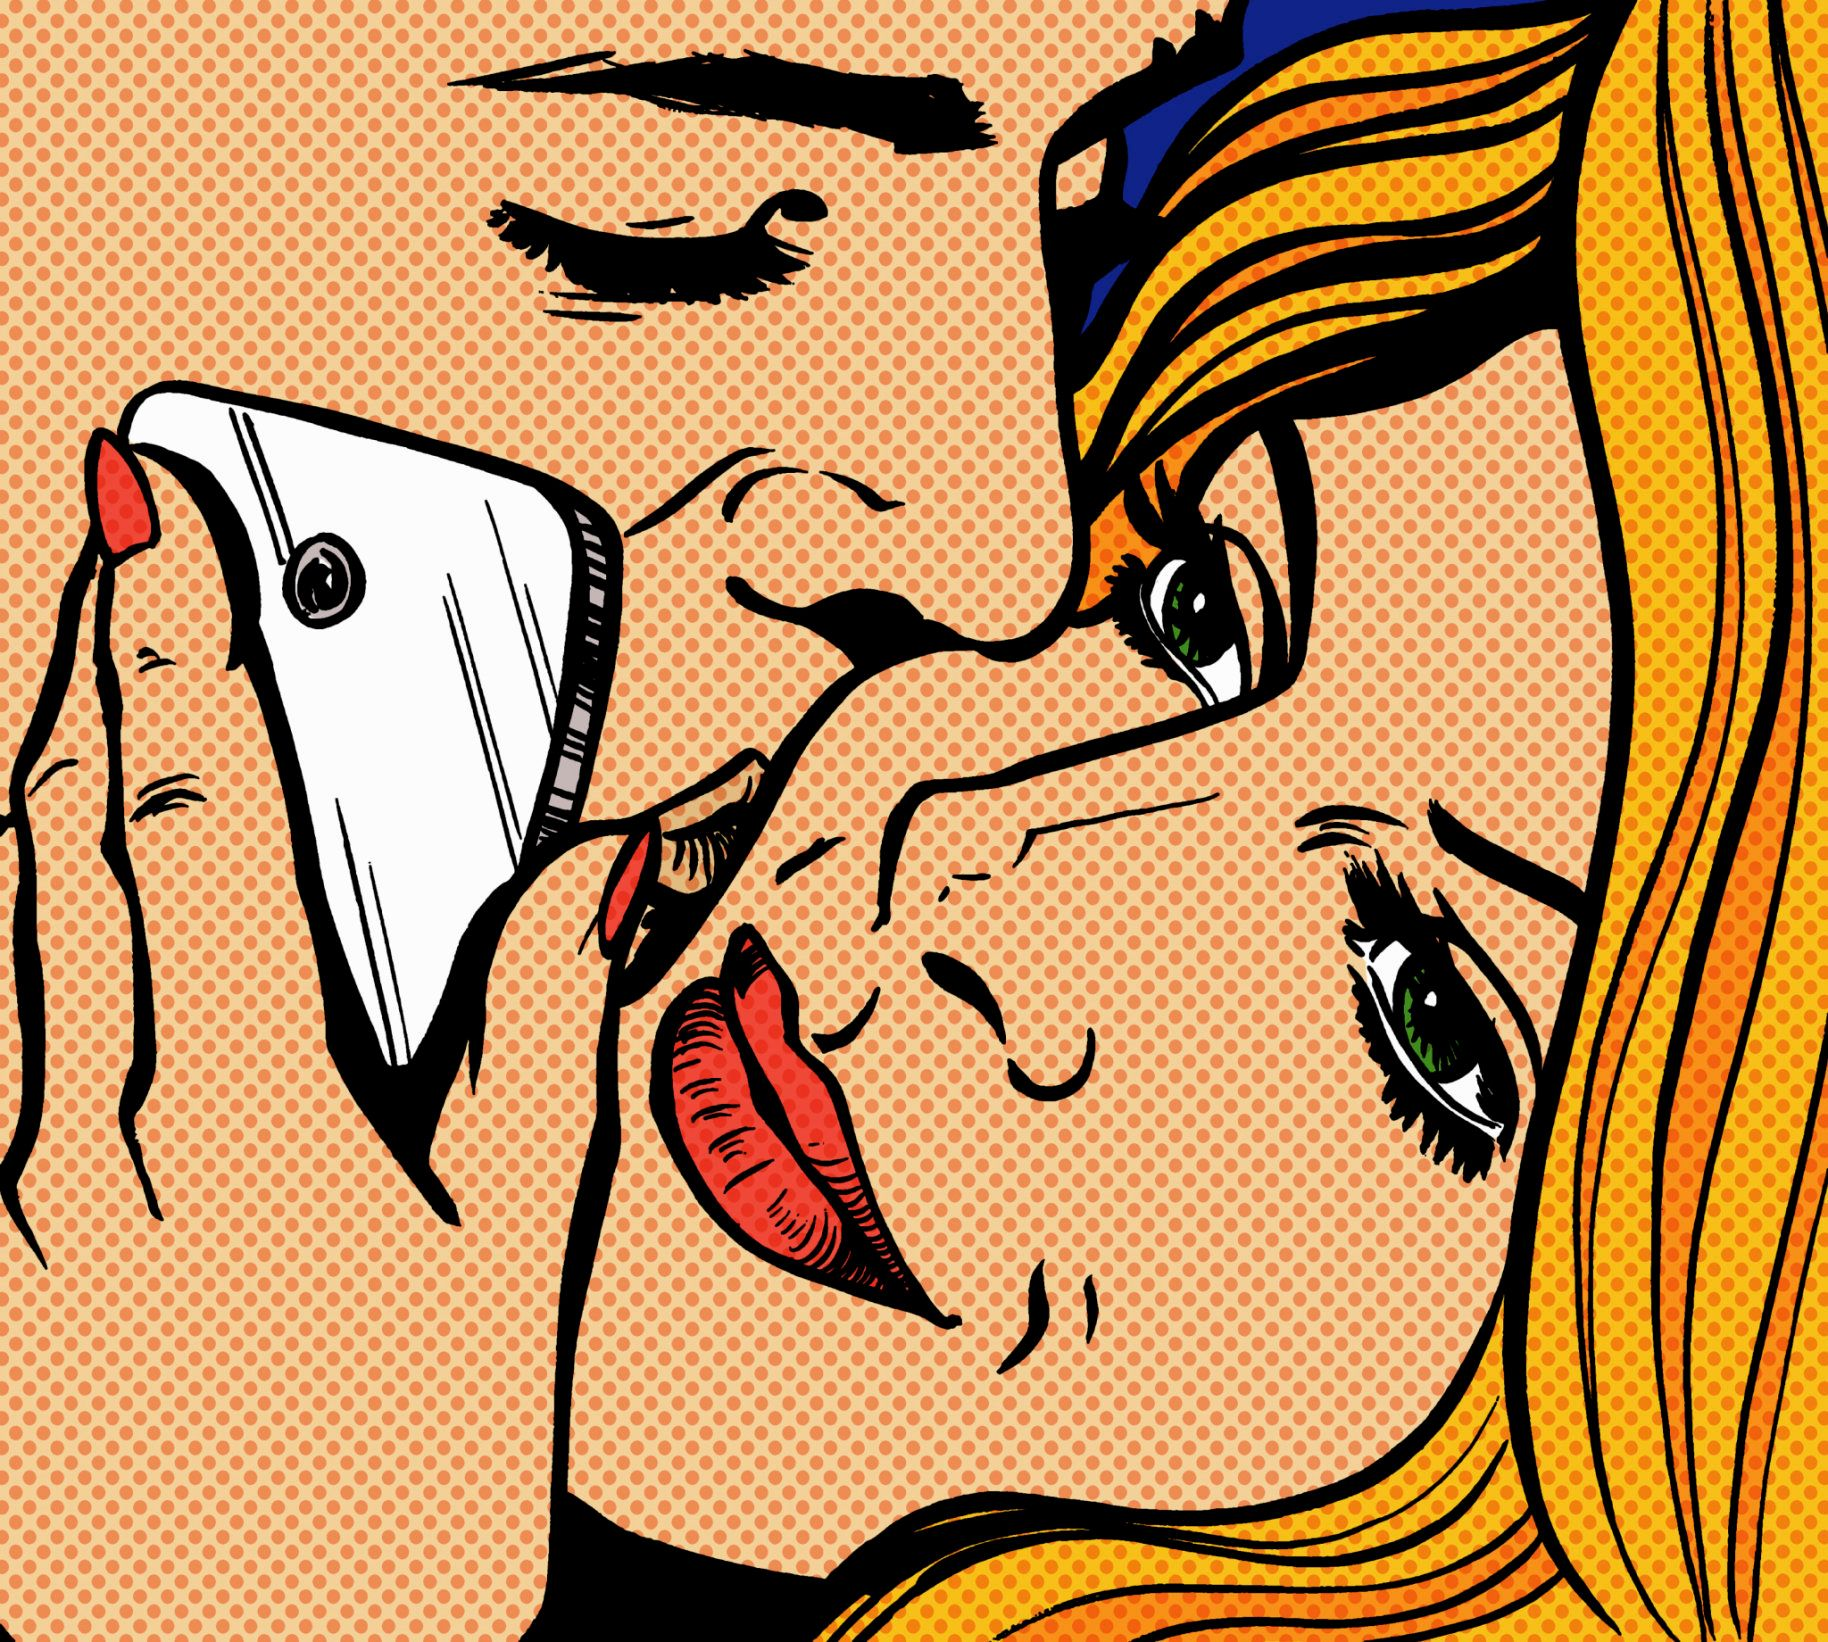 Texting the other dude or woman while you're with your significant other?Not cool.